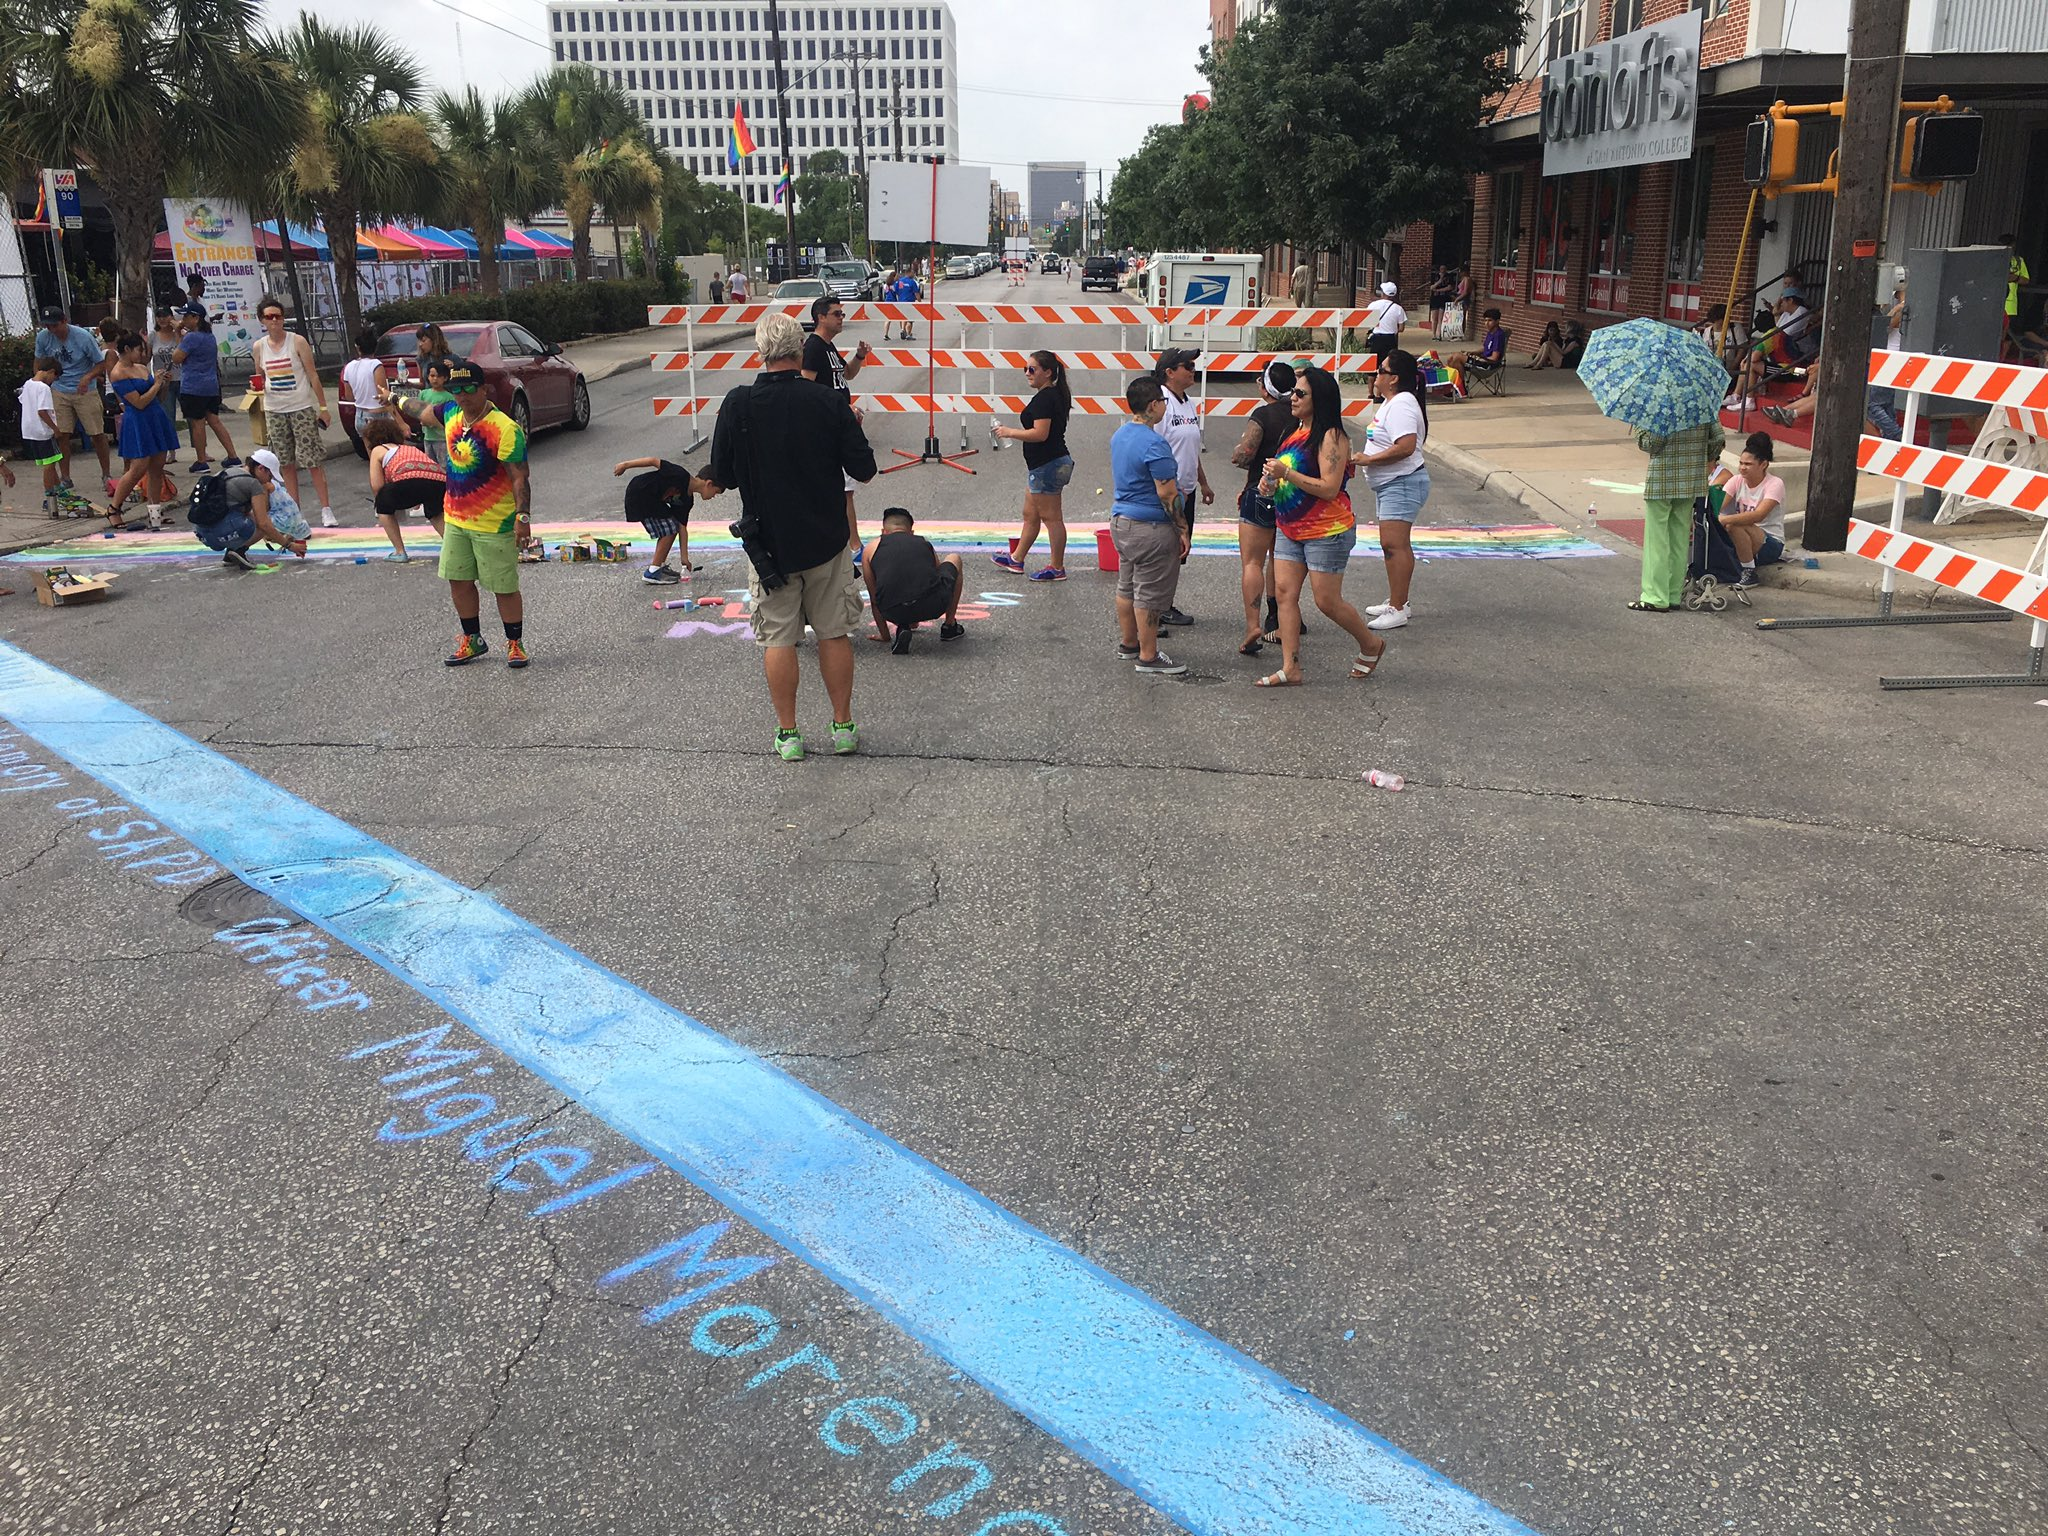 """""""In memory of SAPD officer Miguel Moreno #1603"""" is added to thin blue line as chalk rainbow crosswalks are painted at Evergreen and Main. https://t.co/O4z0bKwuw3"""